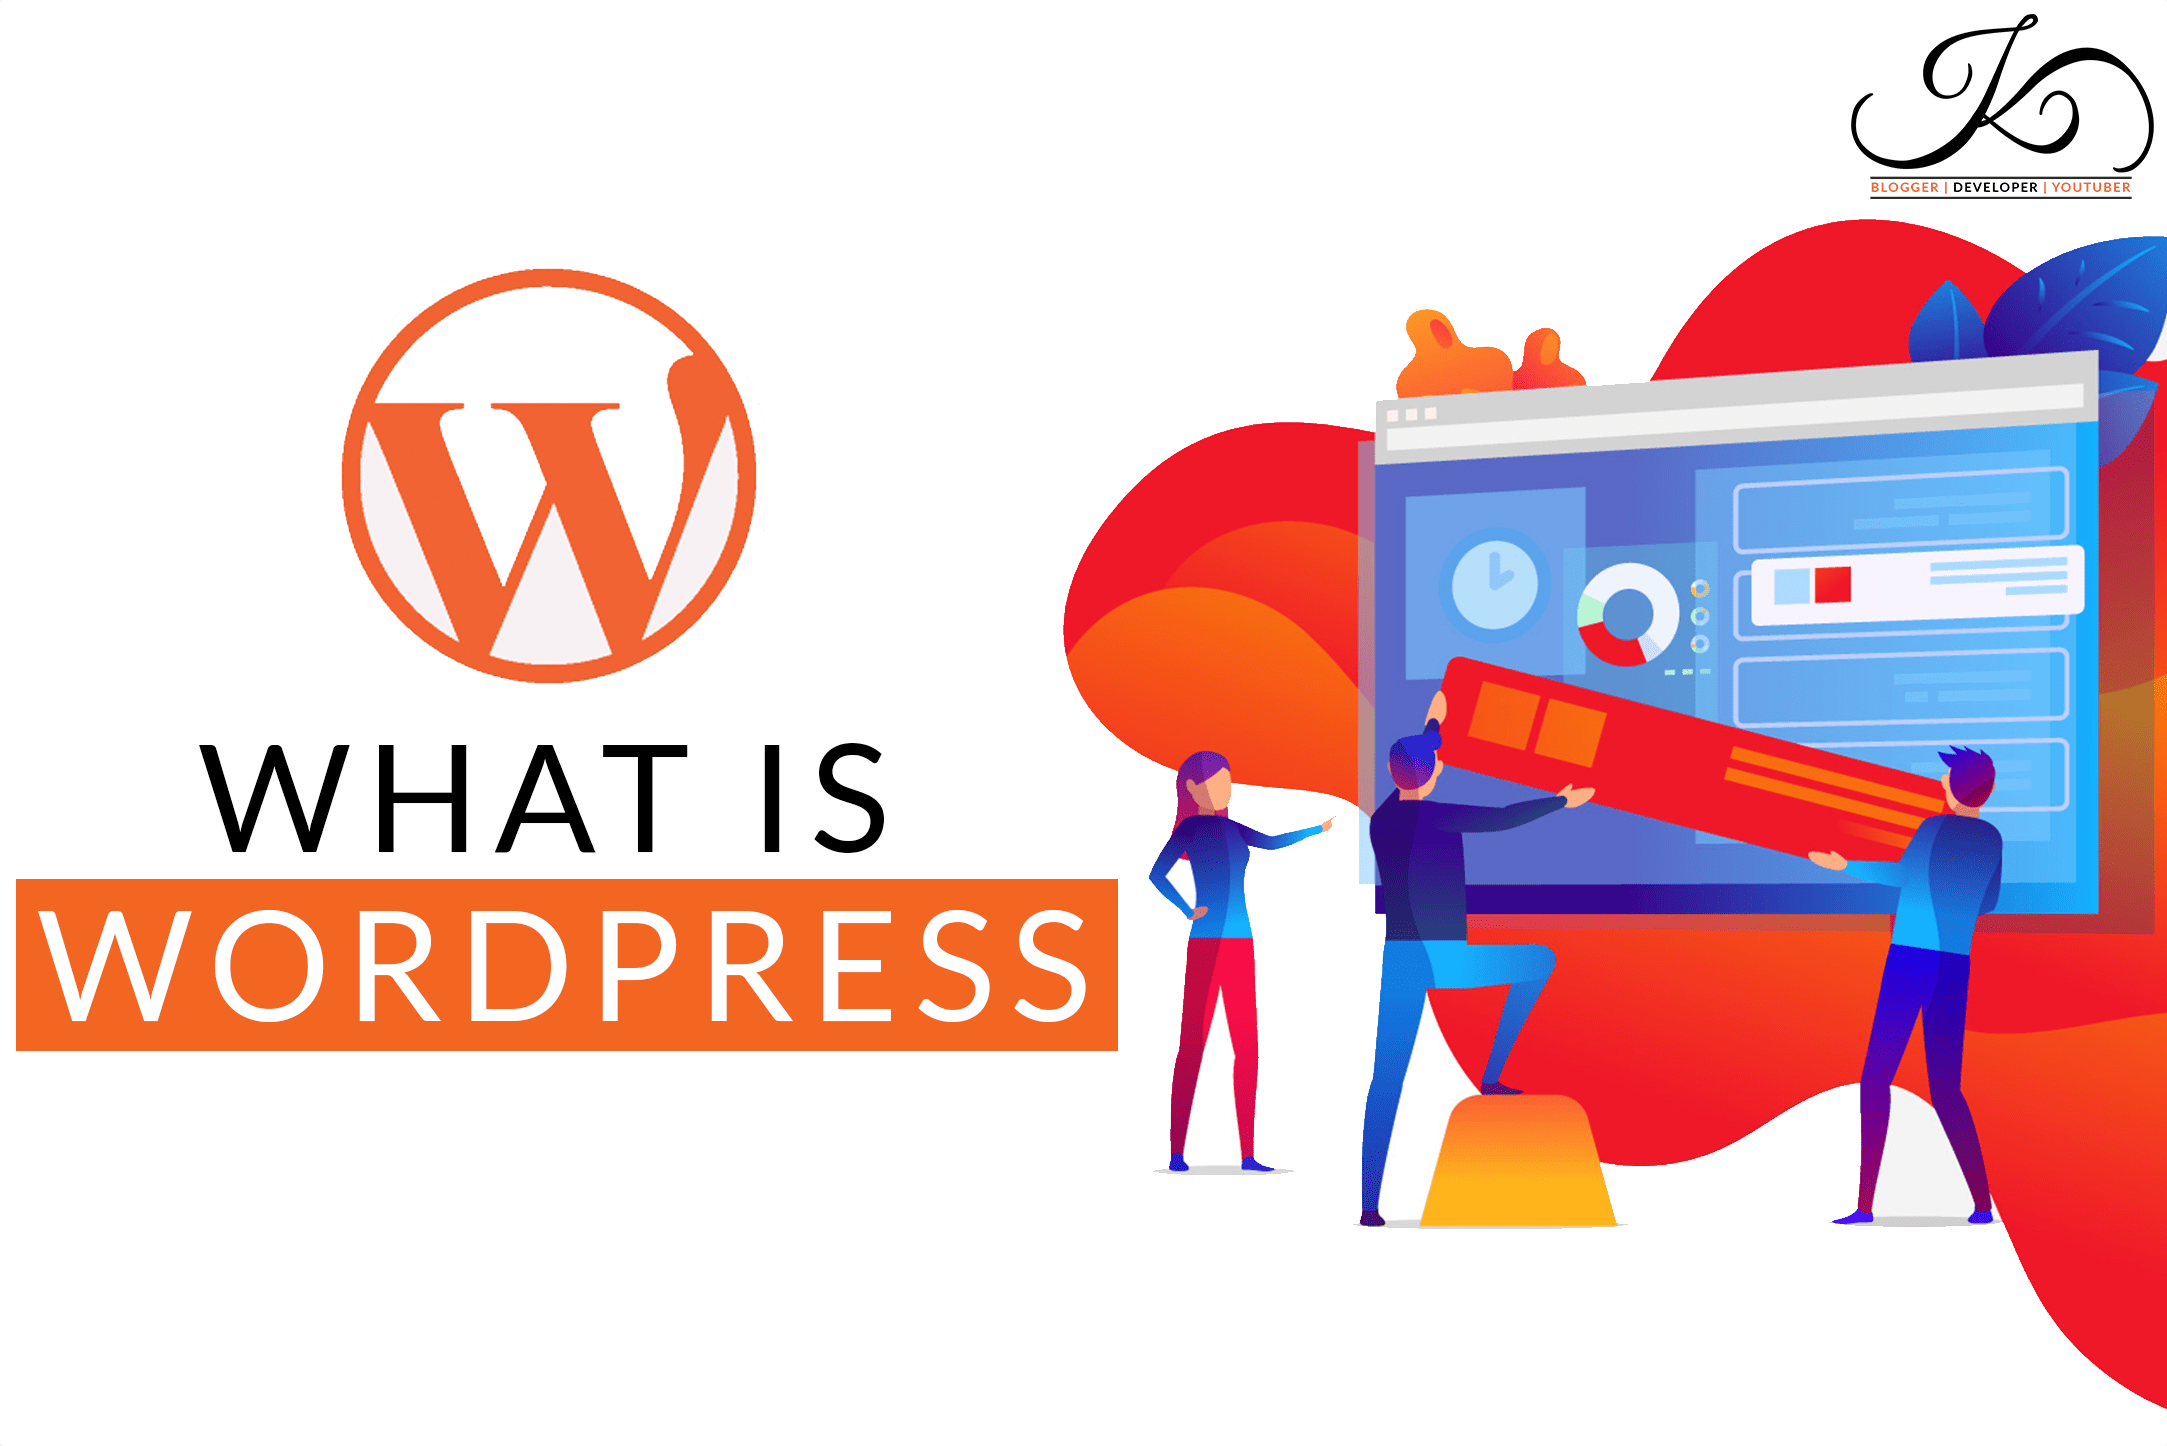 What is wordpress and why we use wordpress?